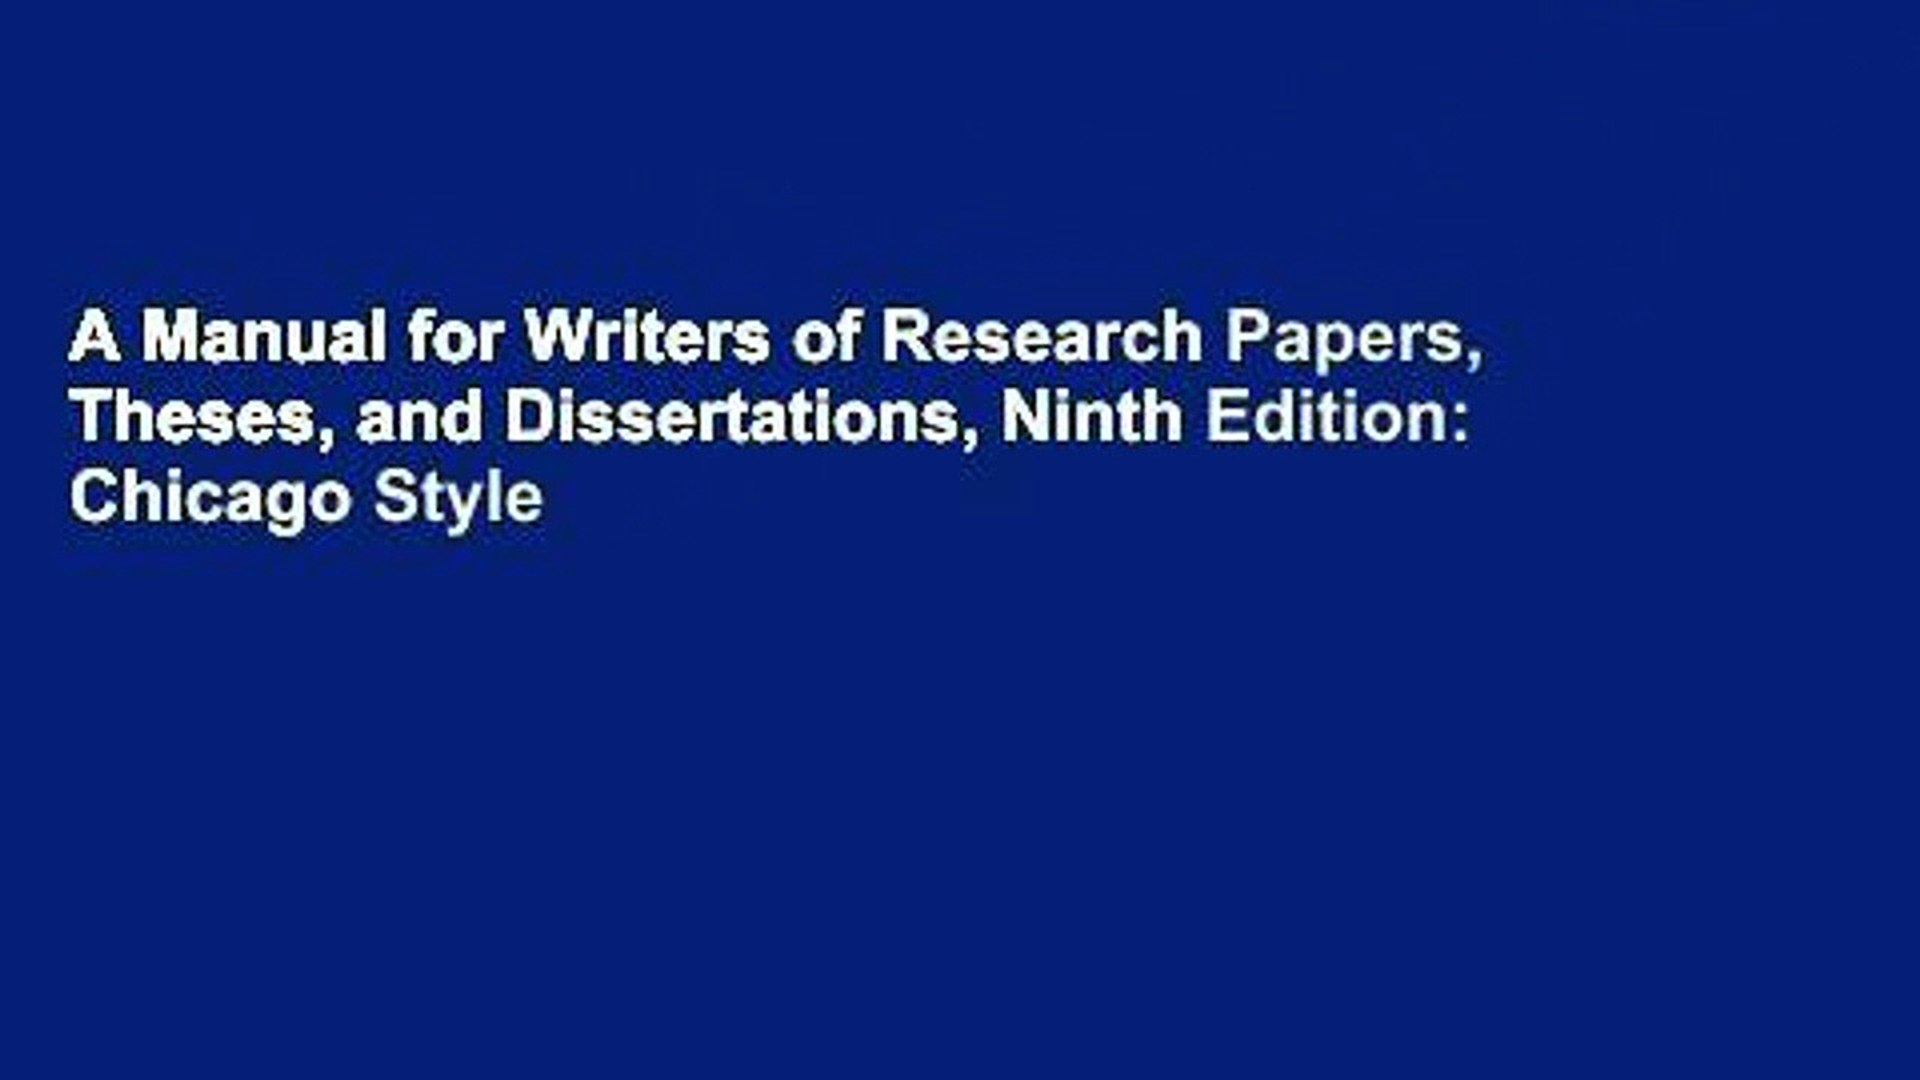 028 Manual For Writers Of Researchs Theses And Dissertations X1080 V4x Sensational A Research Papers 8th Edition Pdf Eighth Full